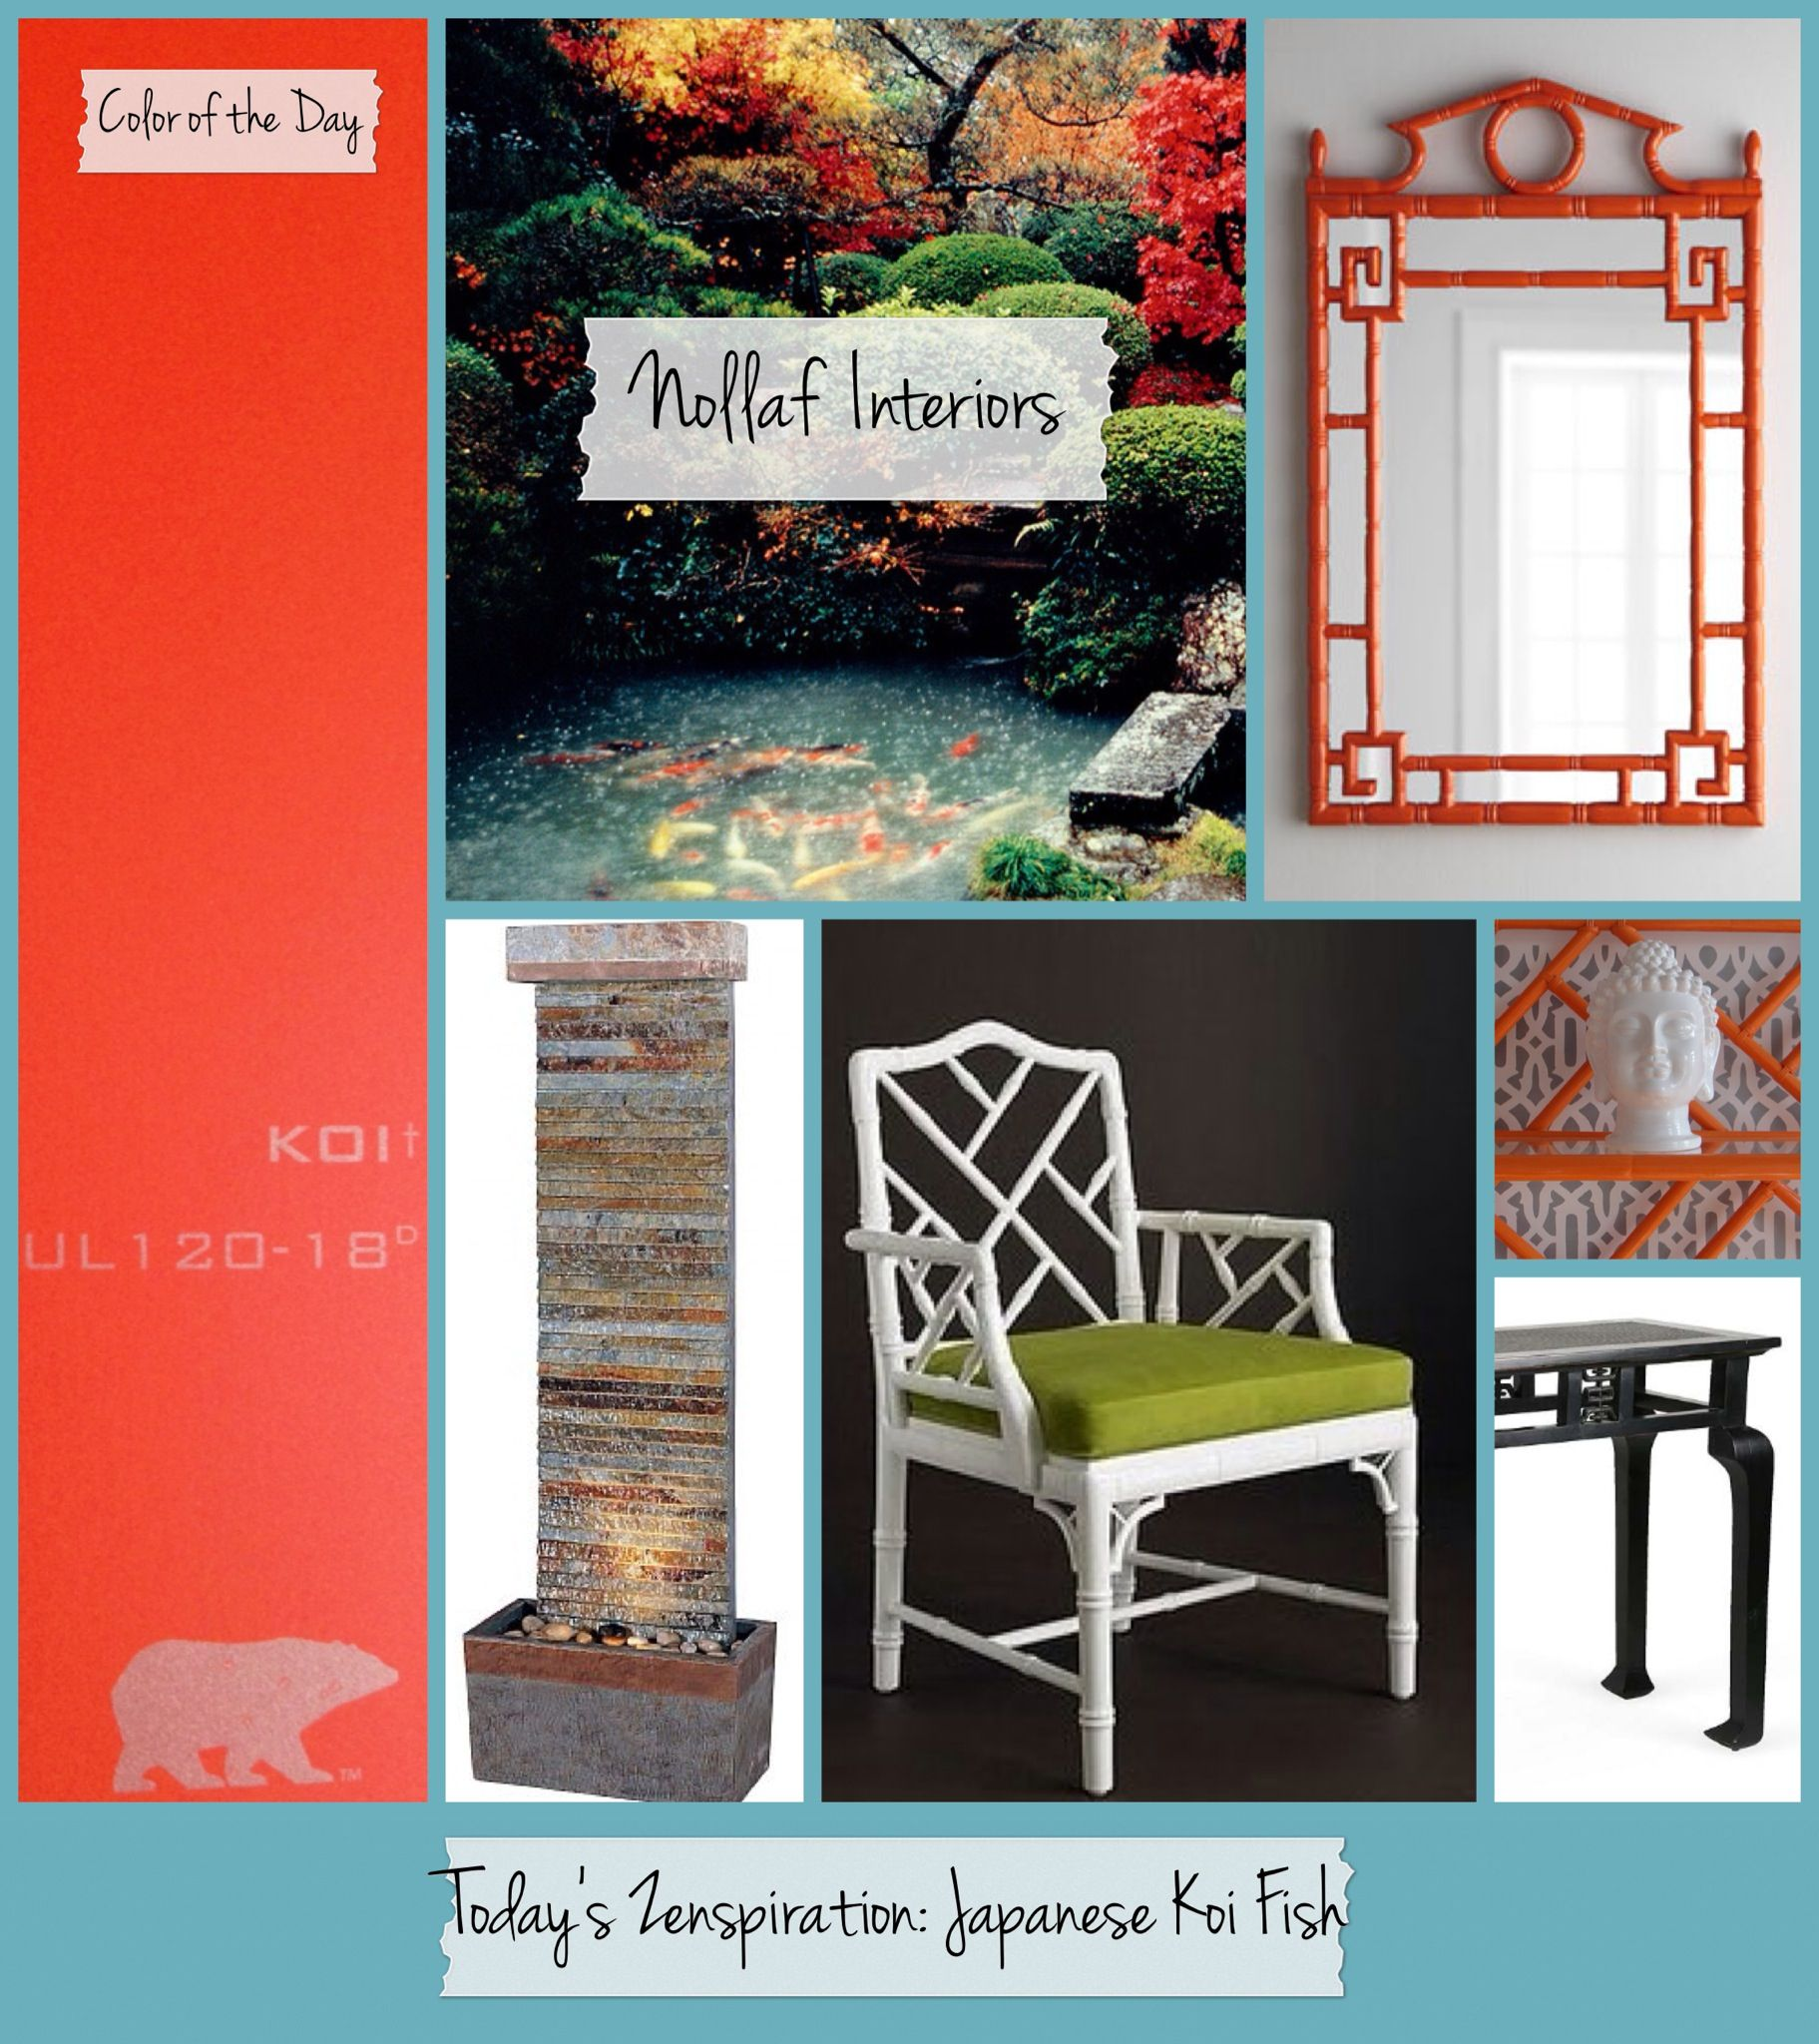 Behr Morning Zen Paint With Accent Wall: Today's Zenspiration...A Japanese Koi Fish Garden. Achieve